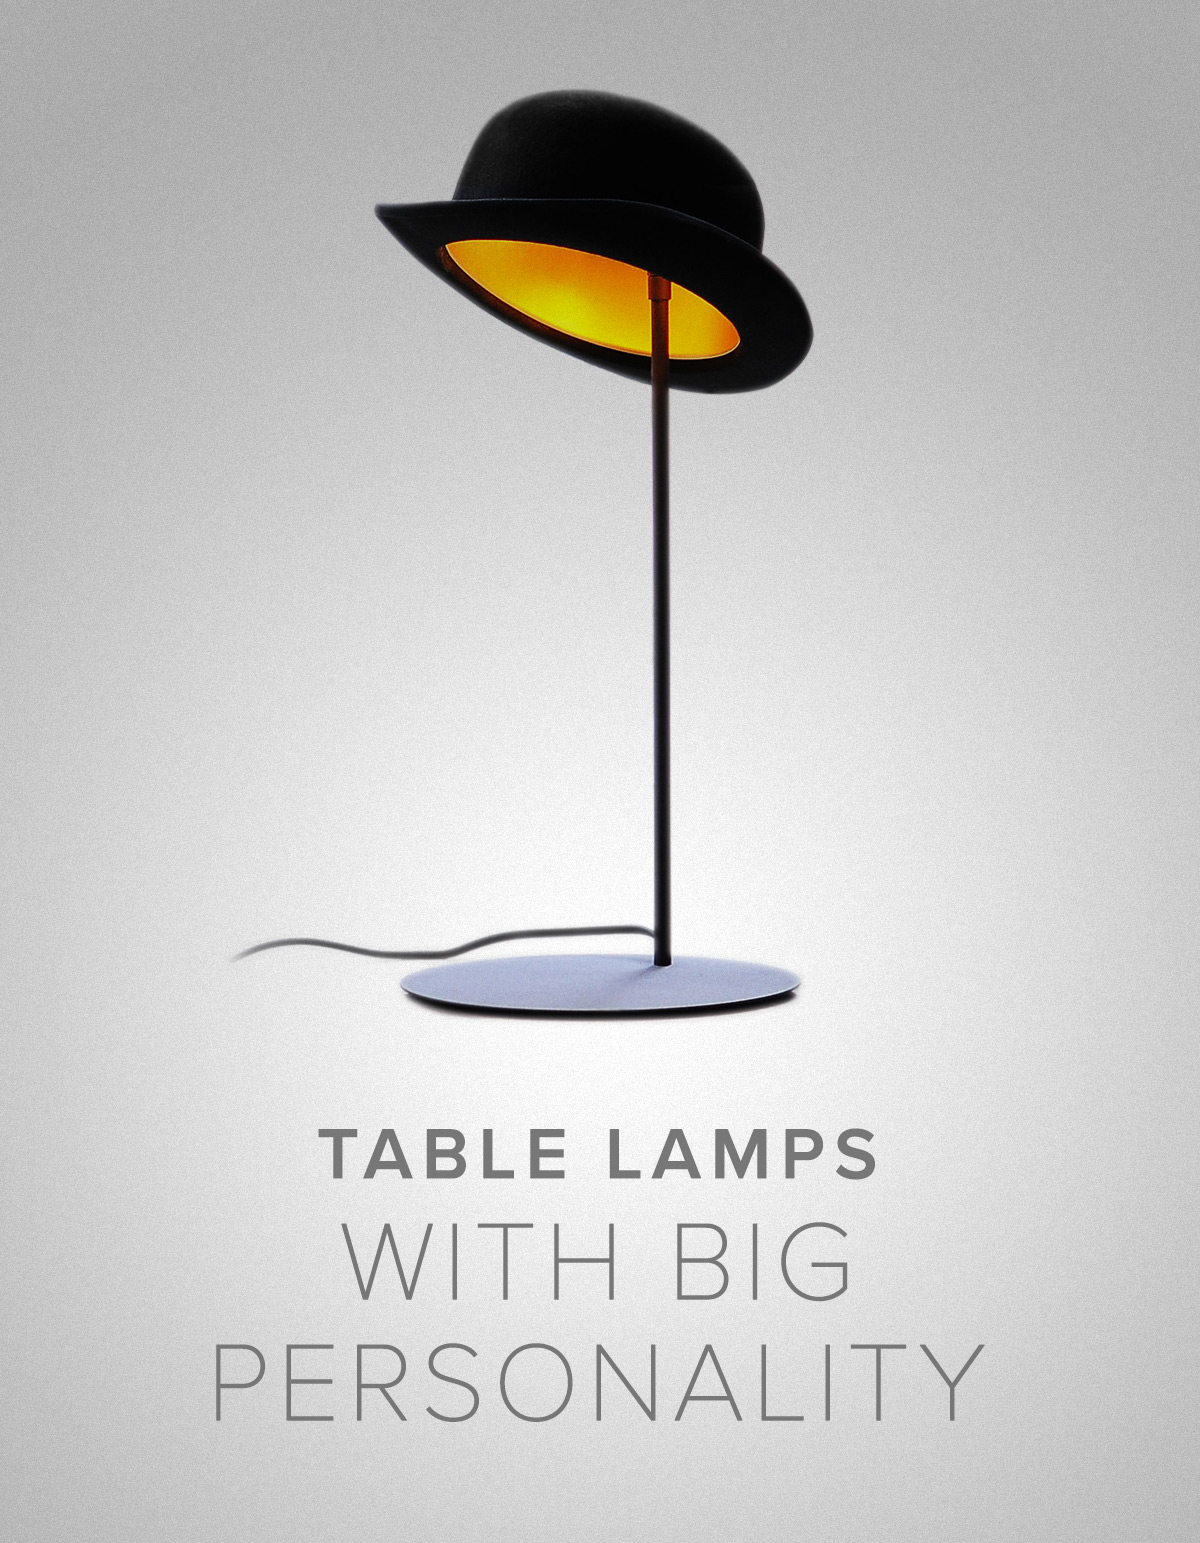 Big Personality Table Lamps